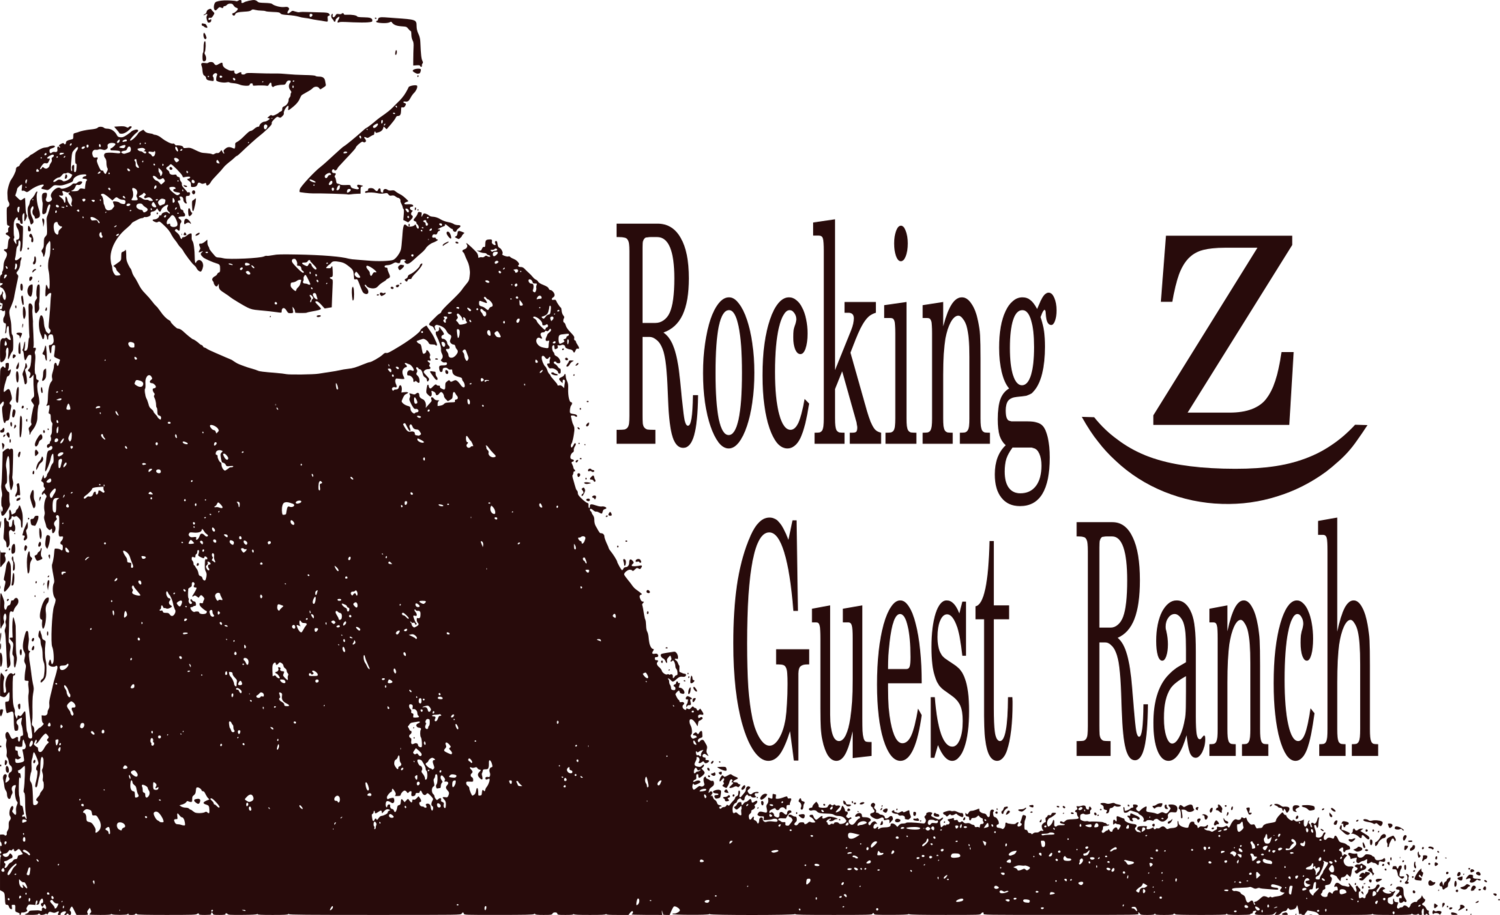 Rocking Z Guest Ranch